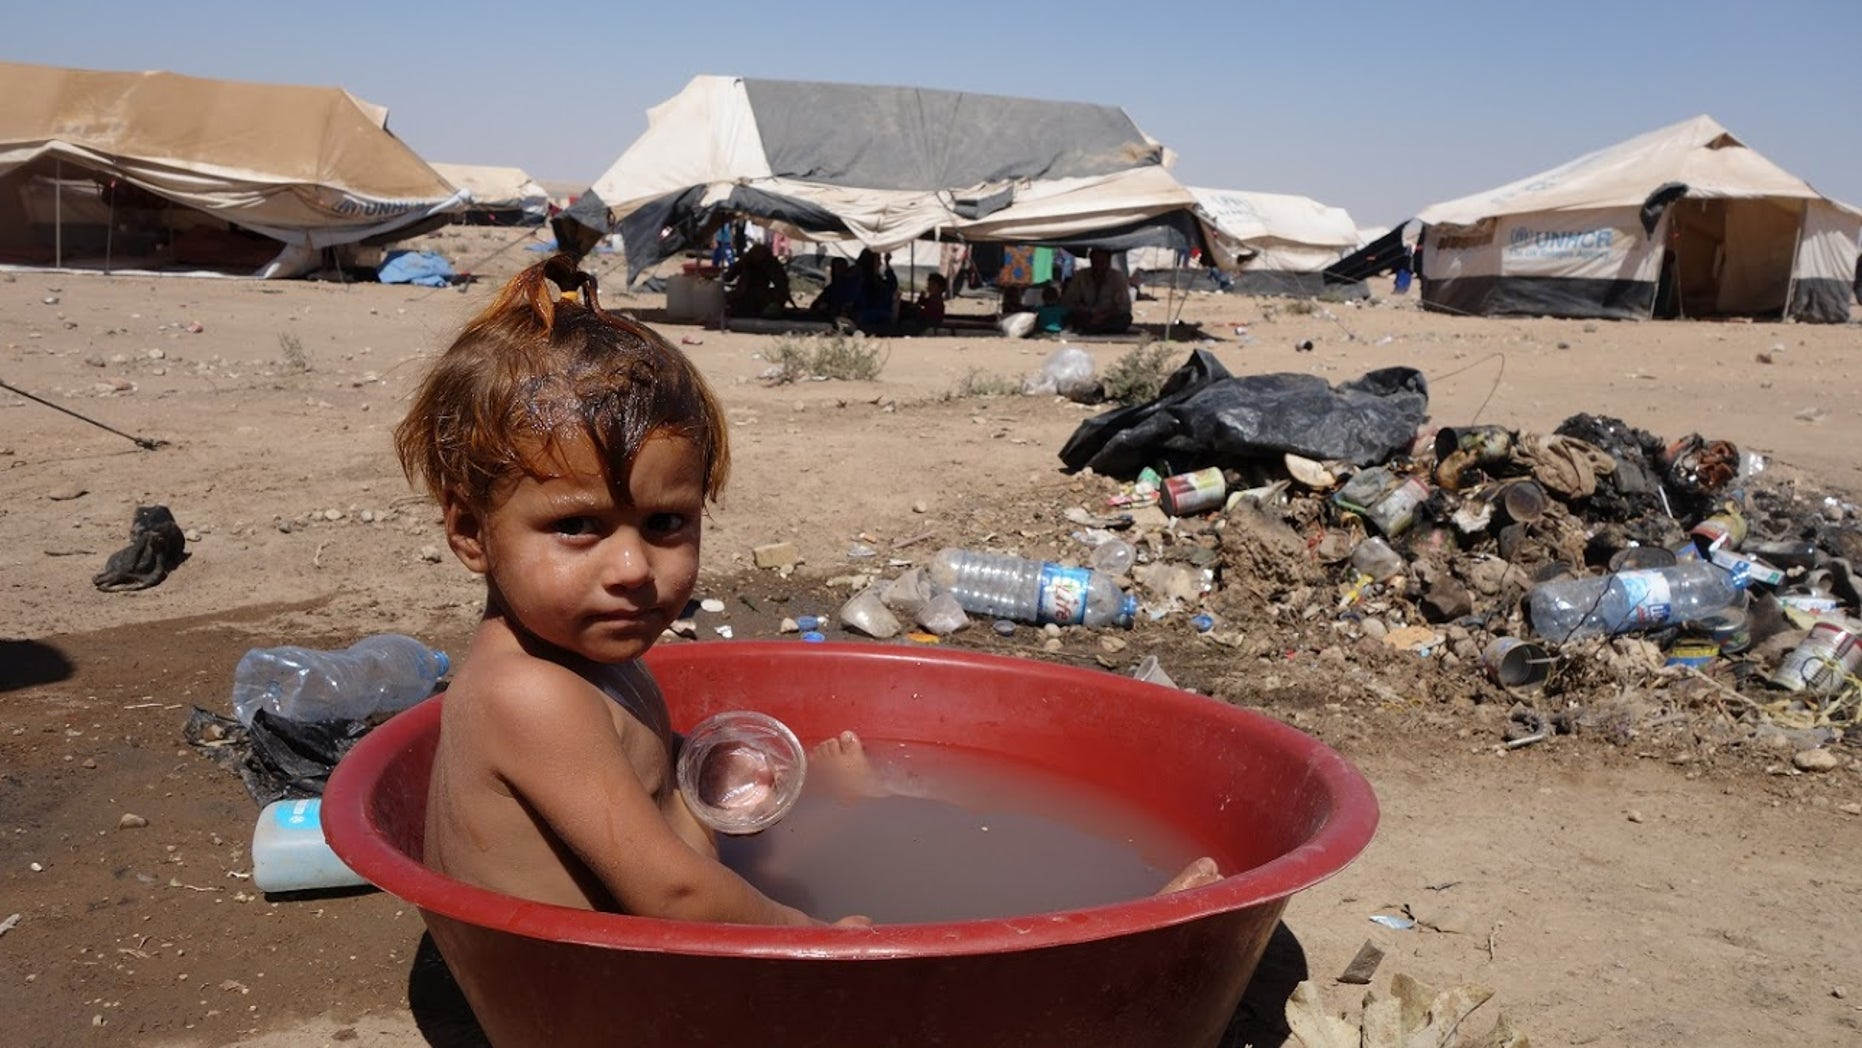 August, 2017: A child in a makeshift, polluted bath at Arisha camp in Hassakeh governorate, Syria. Around 6000 people are accommodated in the camp in very dire conditions, with no clean water, no medical services and no toilets. It was established in June 2017, and the area used to serve as an oil refinery, hence toxic waste could be found on site.